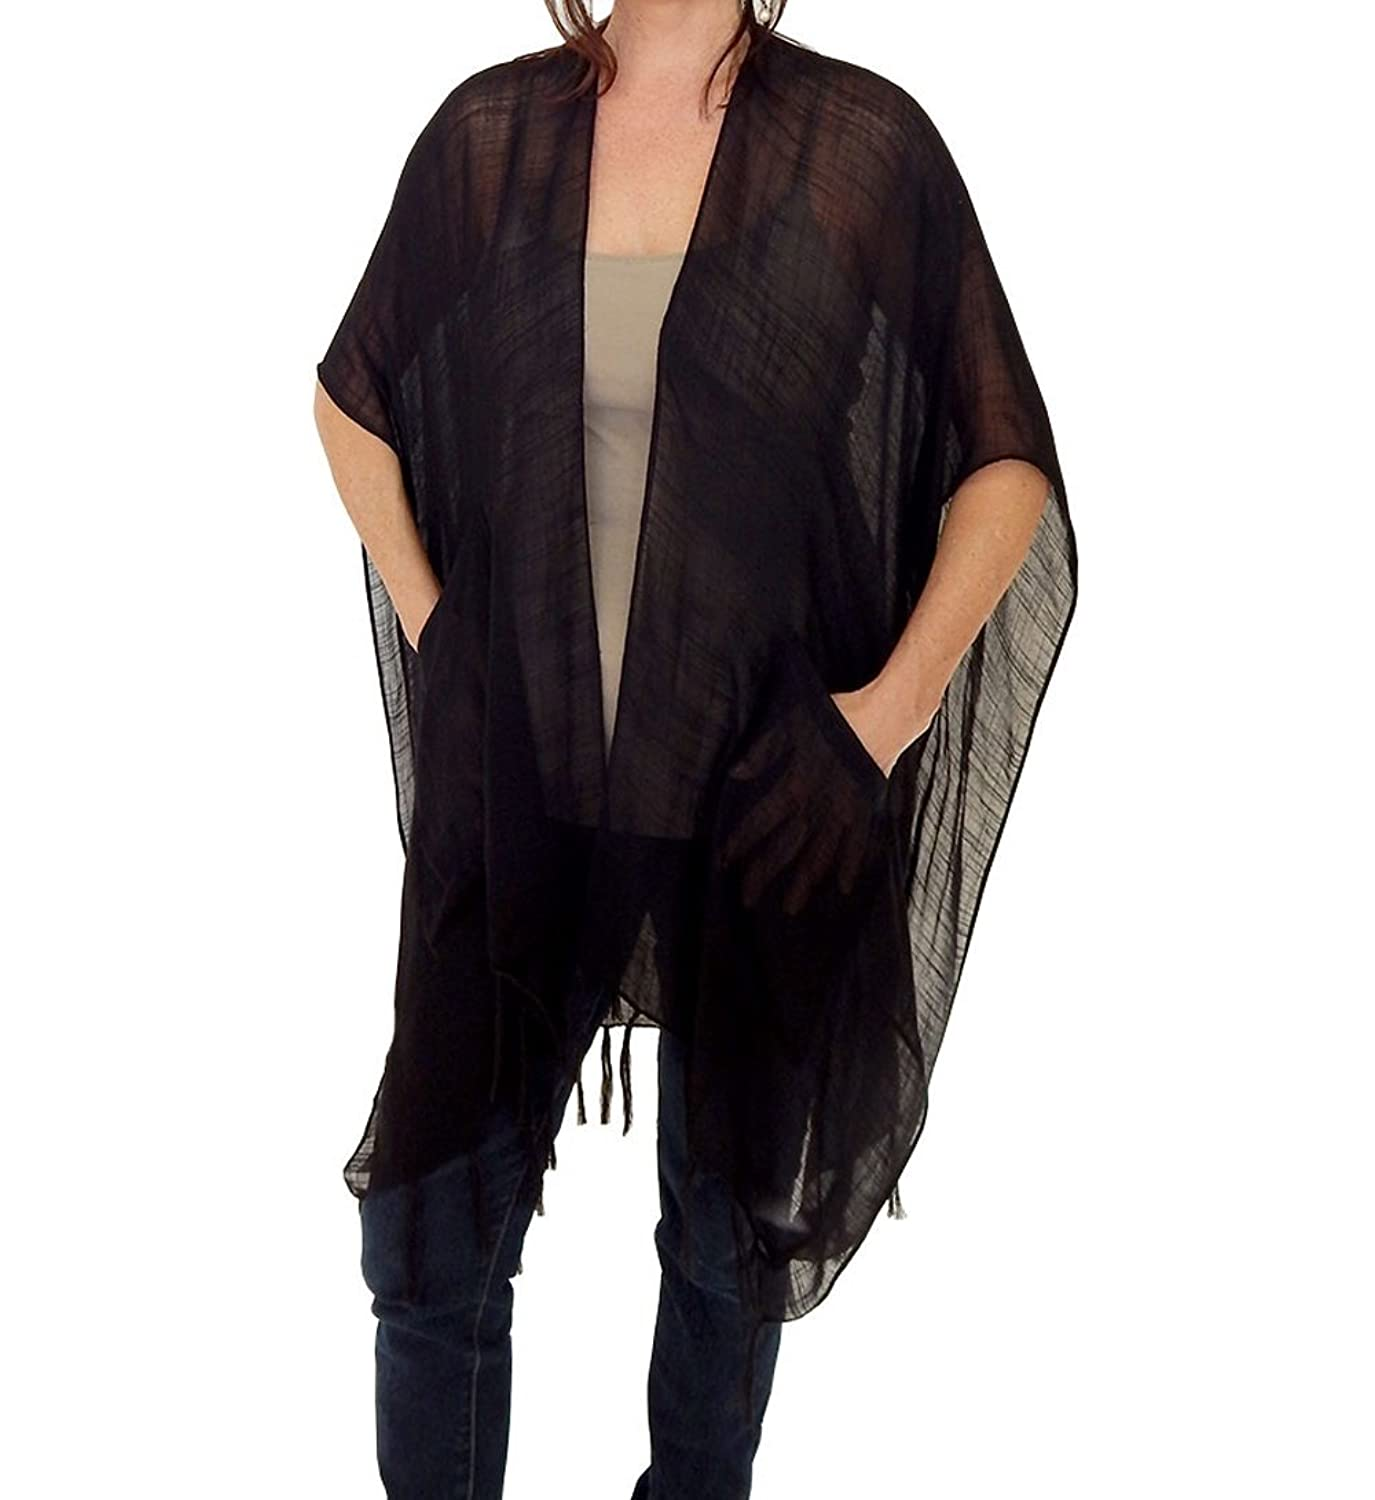 Alabama Girl Ruana Elegant Pocket Shawl in Black